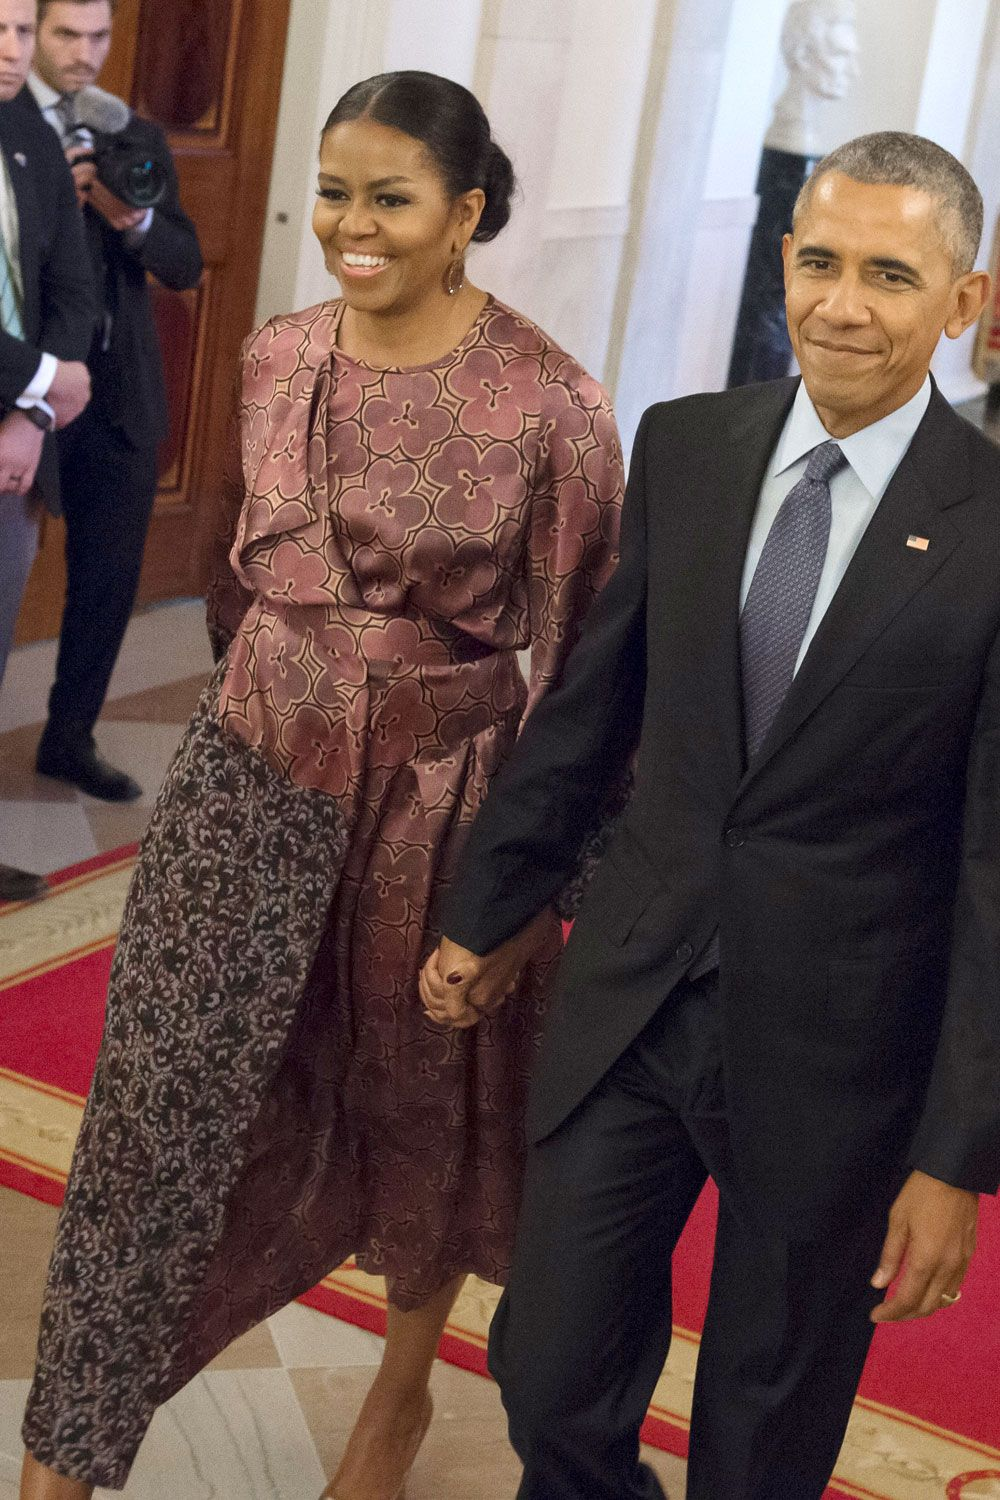 92a4b9966e Michelle Obama's Best Looks - Michelle Obama Style Fashion and Outfits